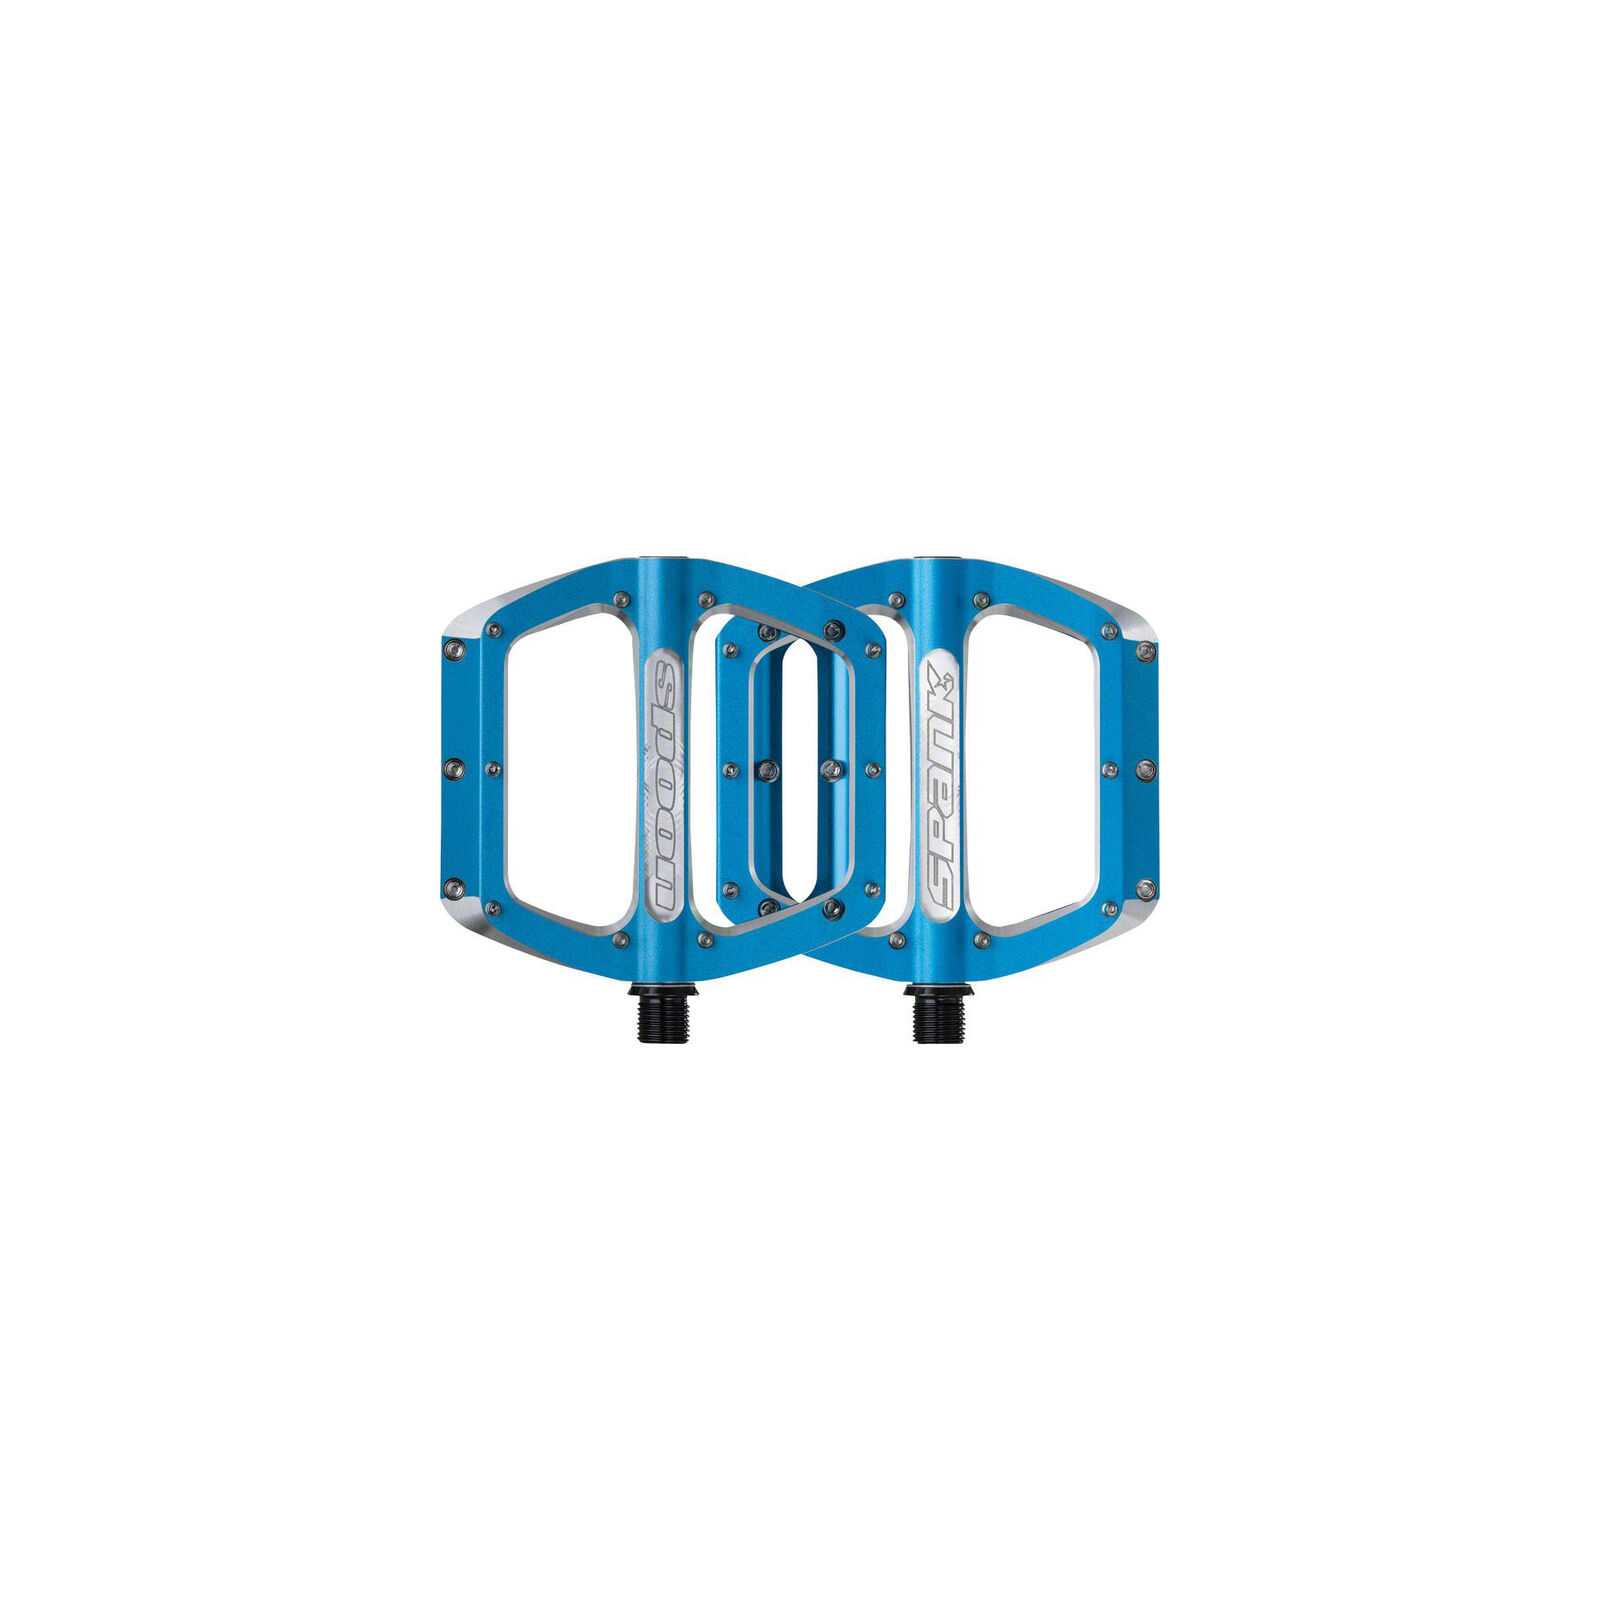 Spank Spoon Large (110mm) Pedals, blueee